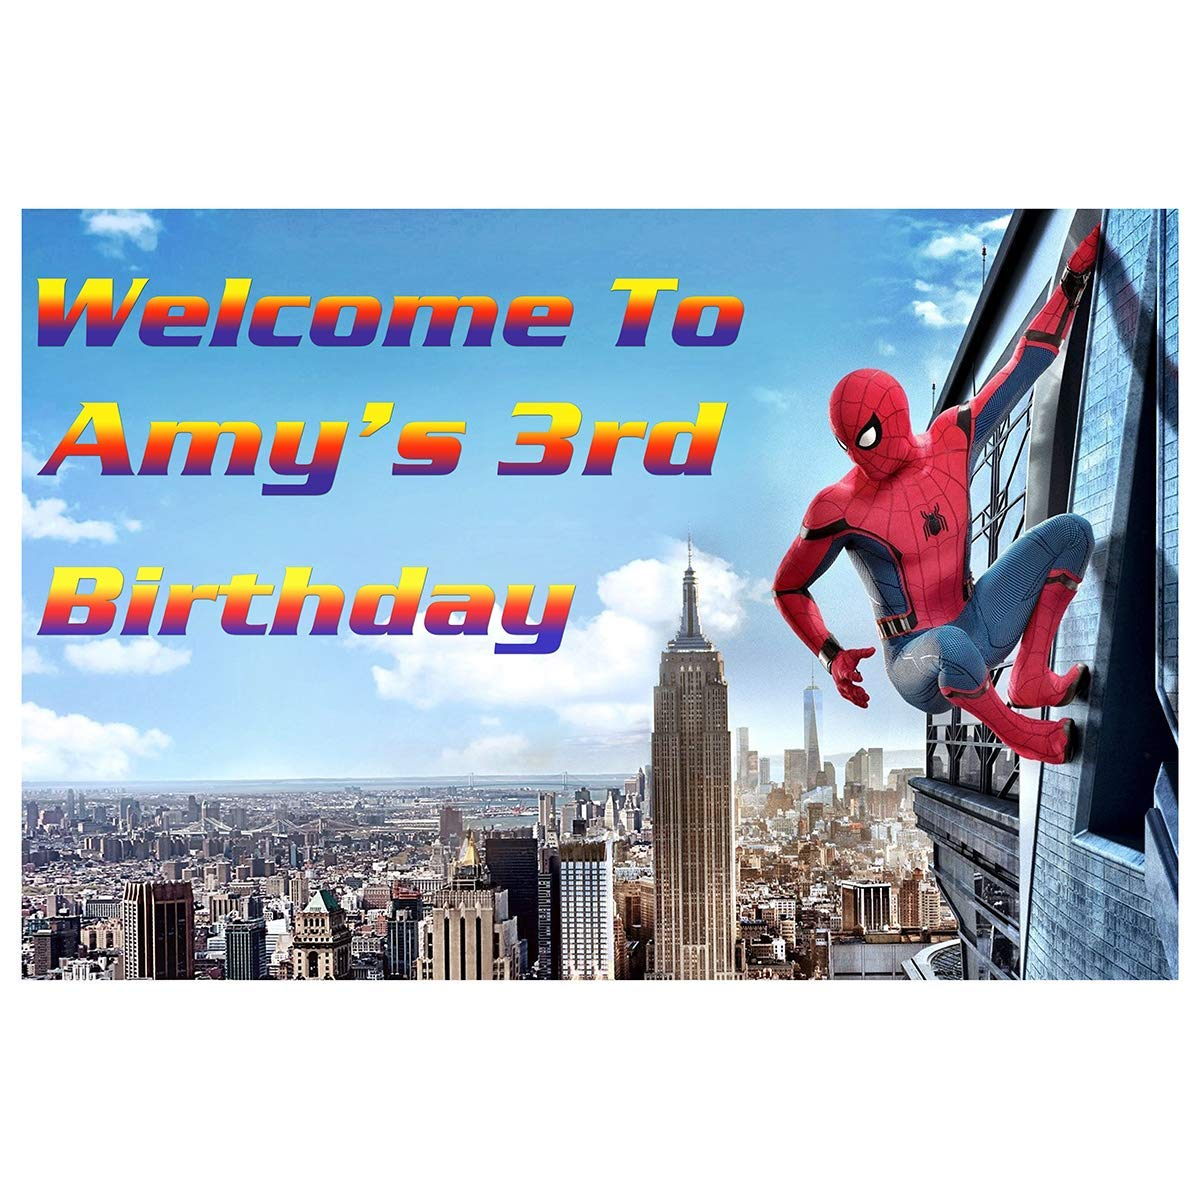 HoRmi Replacement for Marvel Party Decoration Supplies Num624 Backdrop Customized for Birthday Decor